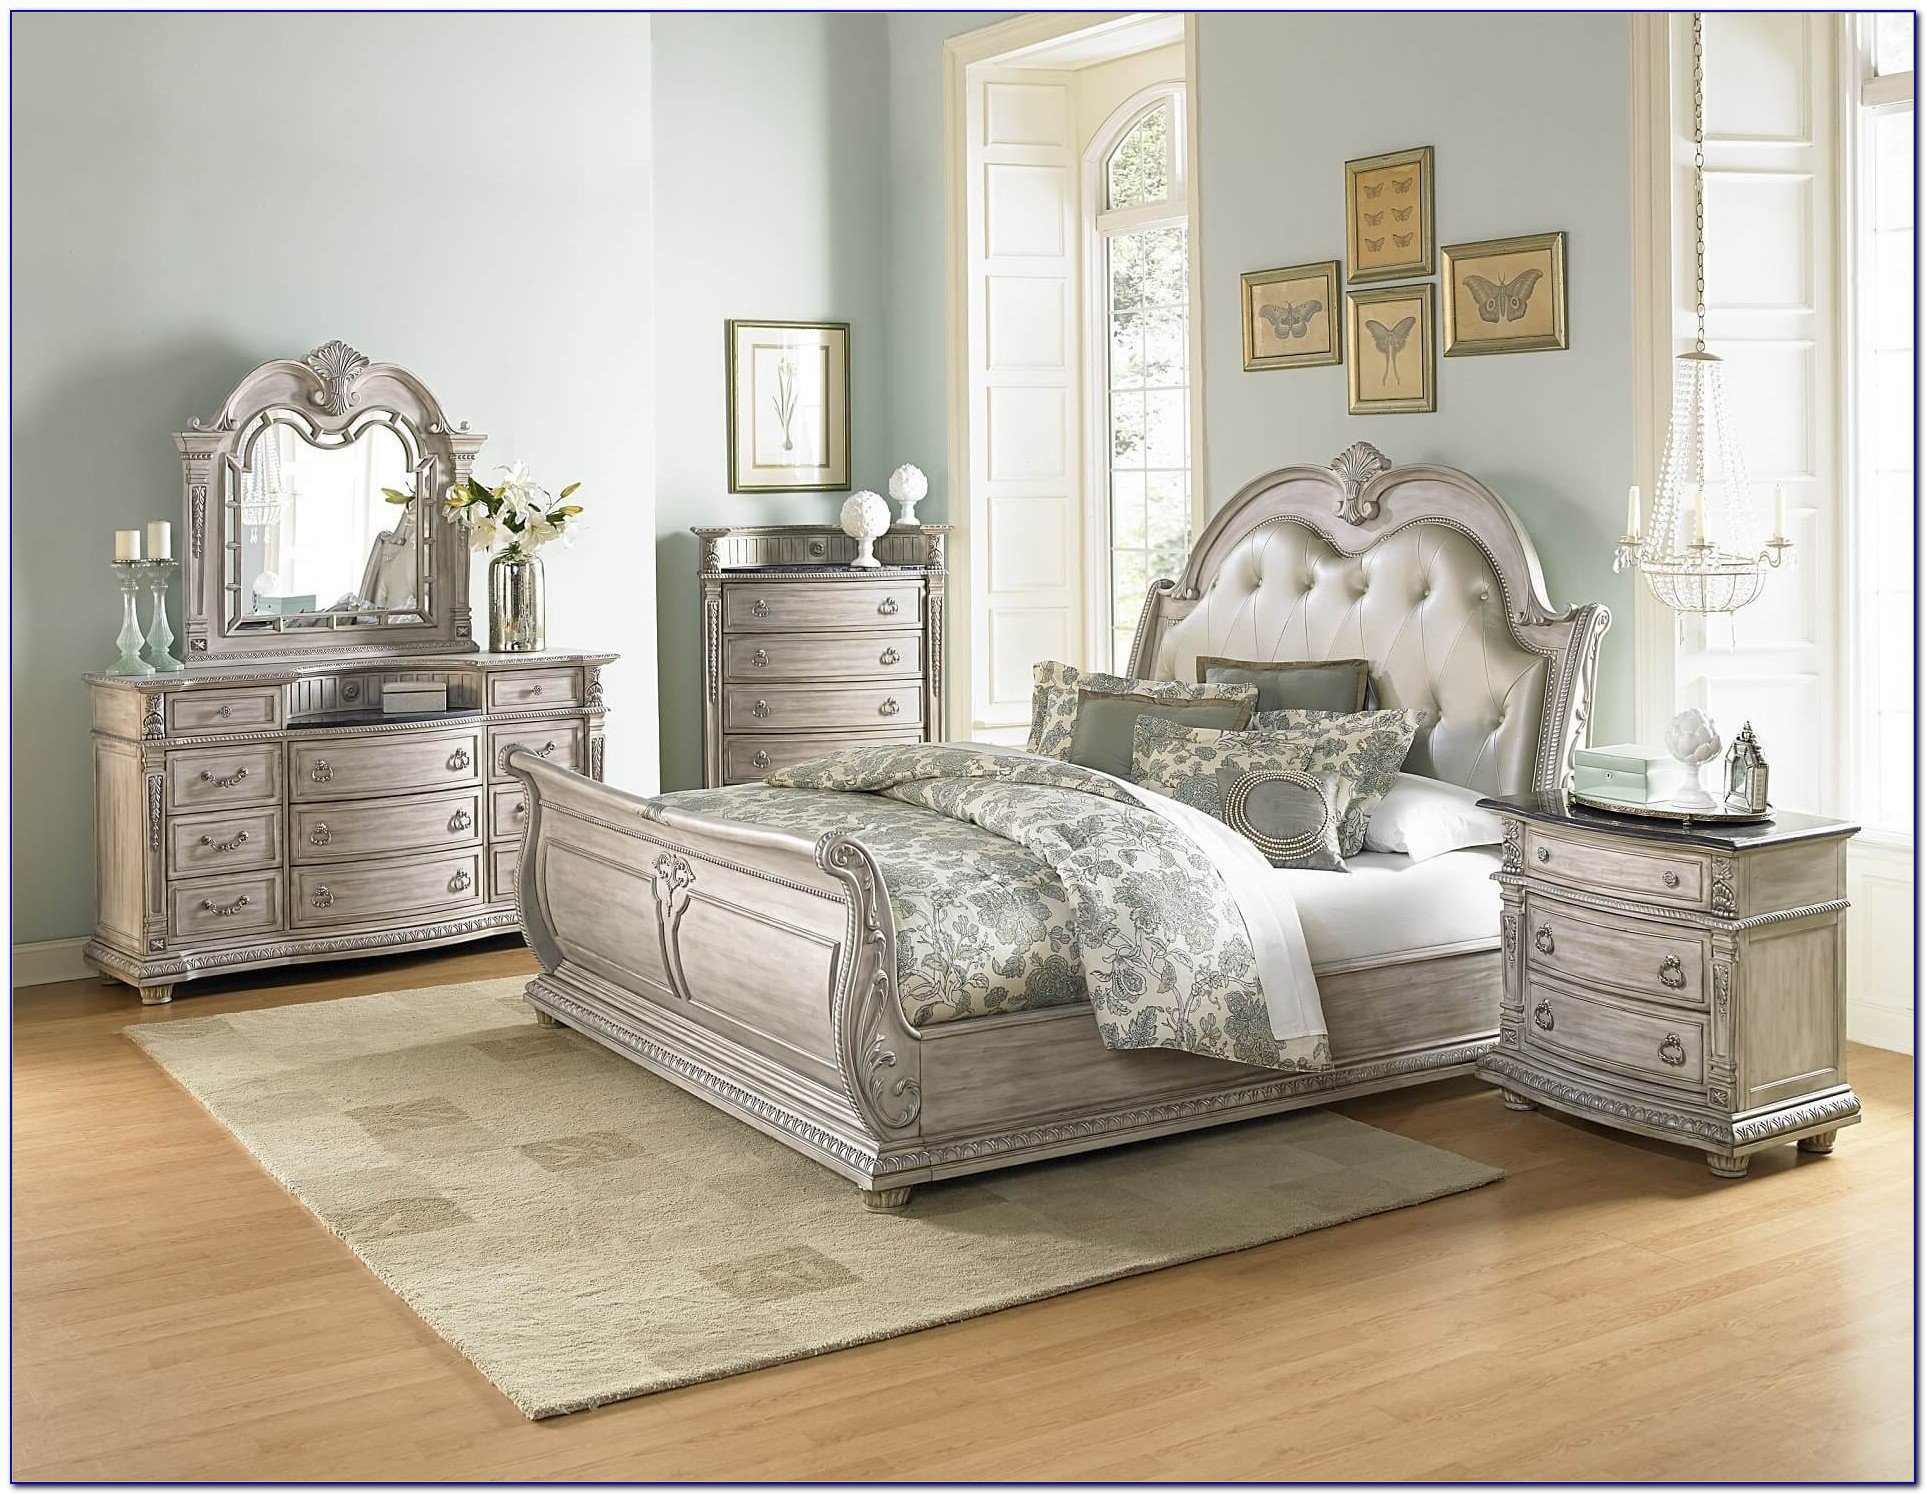 Distressed Wood Bedroom Furniture Beautiful White Washed Bedroom Furniture Nz Home Design Ideas